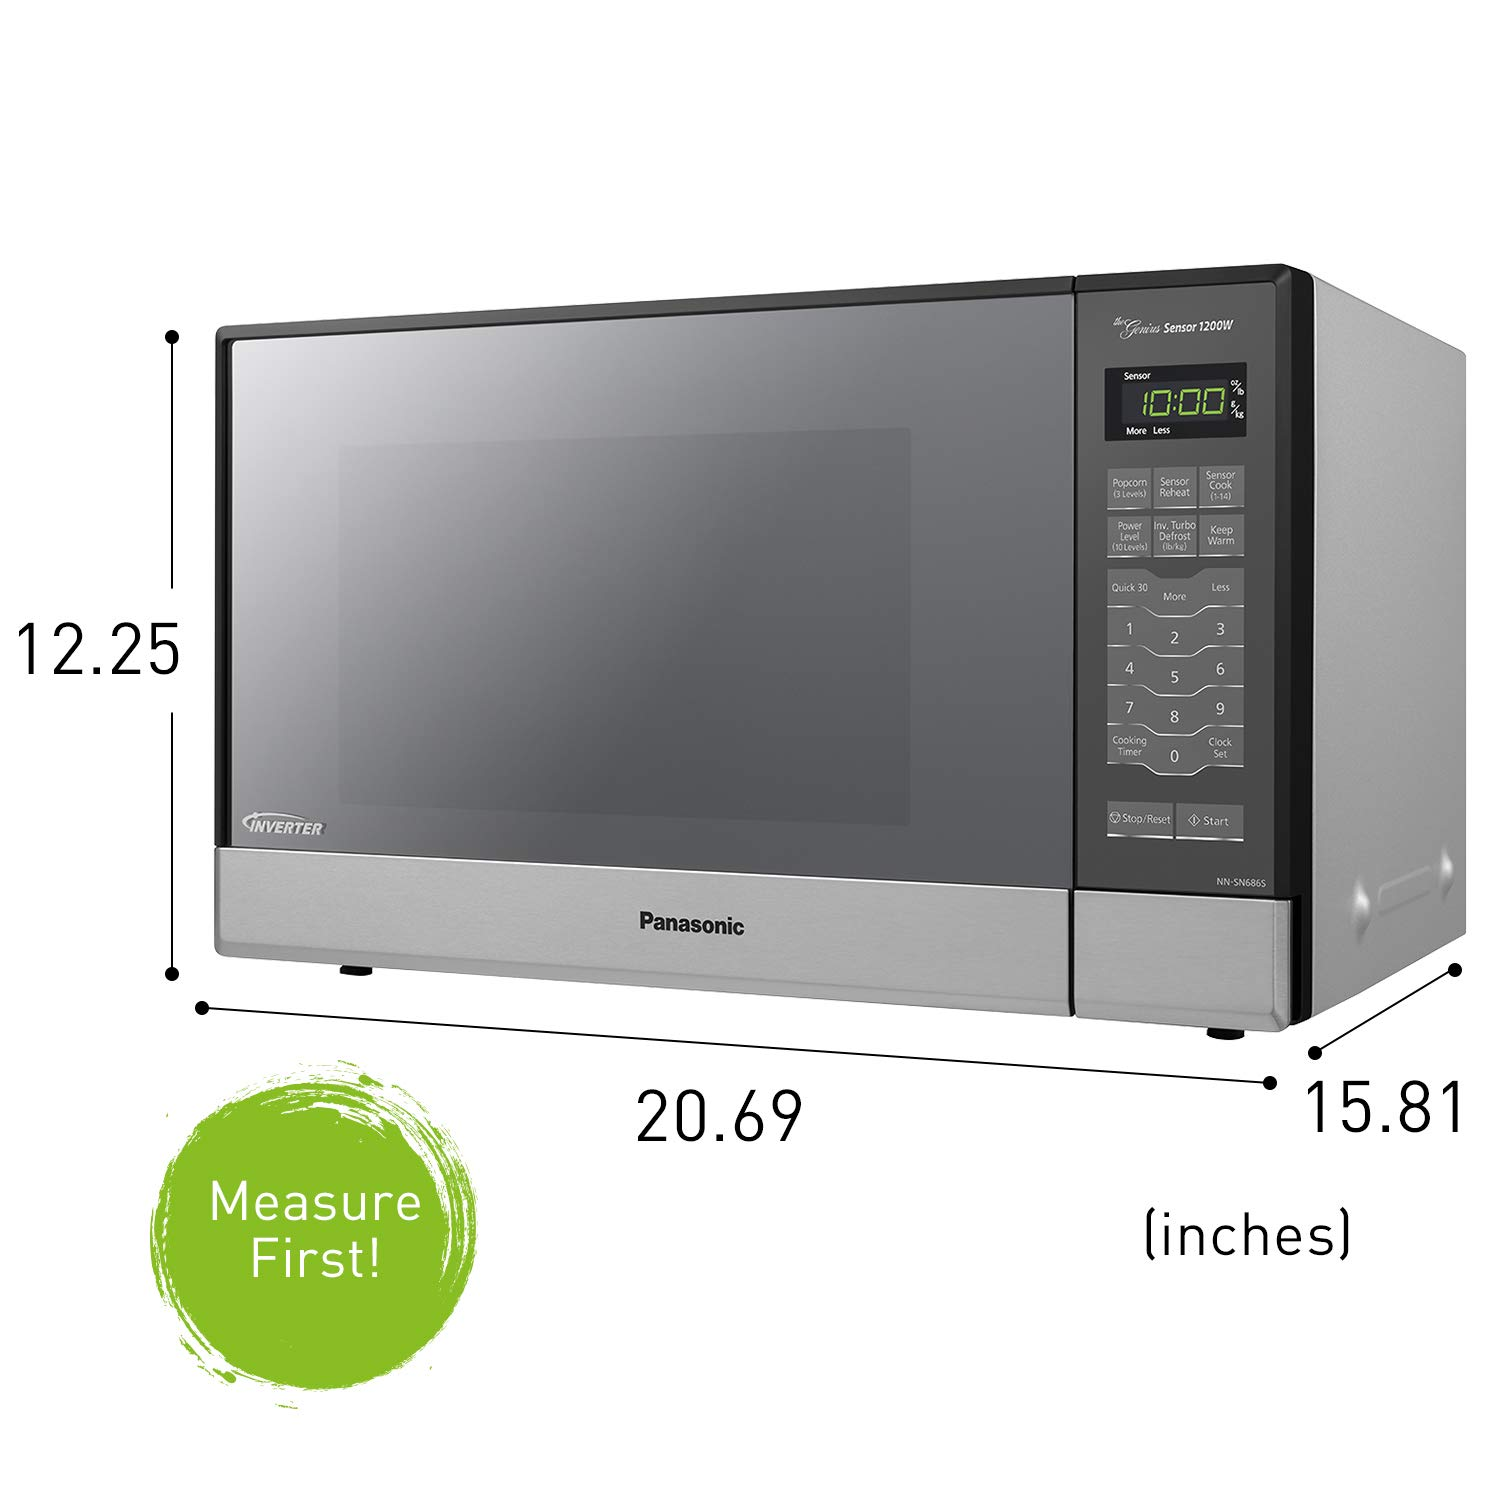 Panasonic Nn Sn686s 1200w Countertop Microwave Oven 1 2 Cu Ft Silver Nezmart